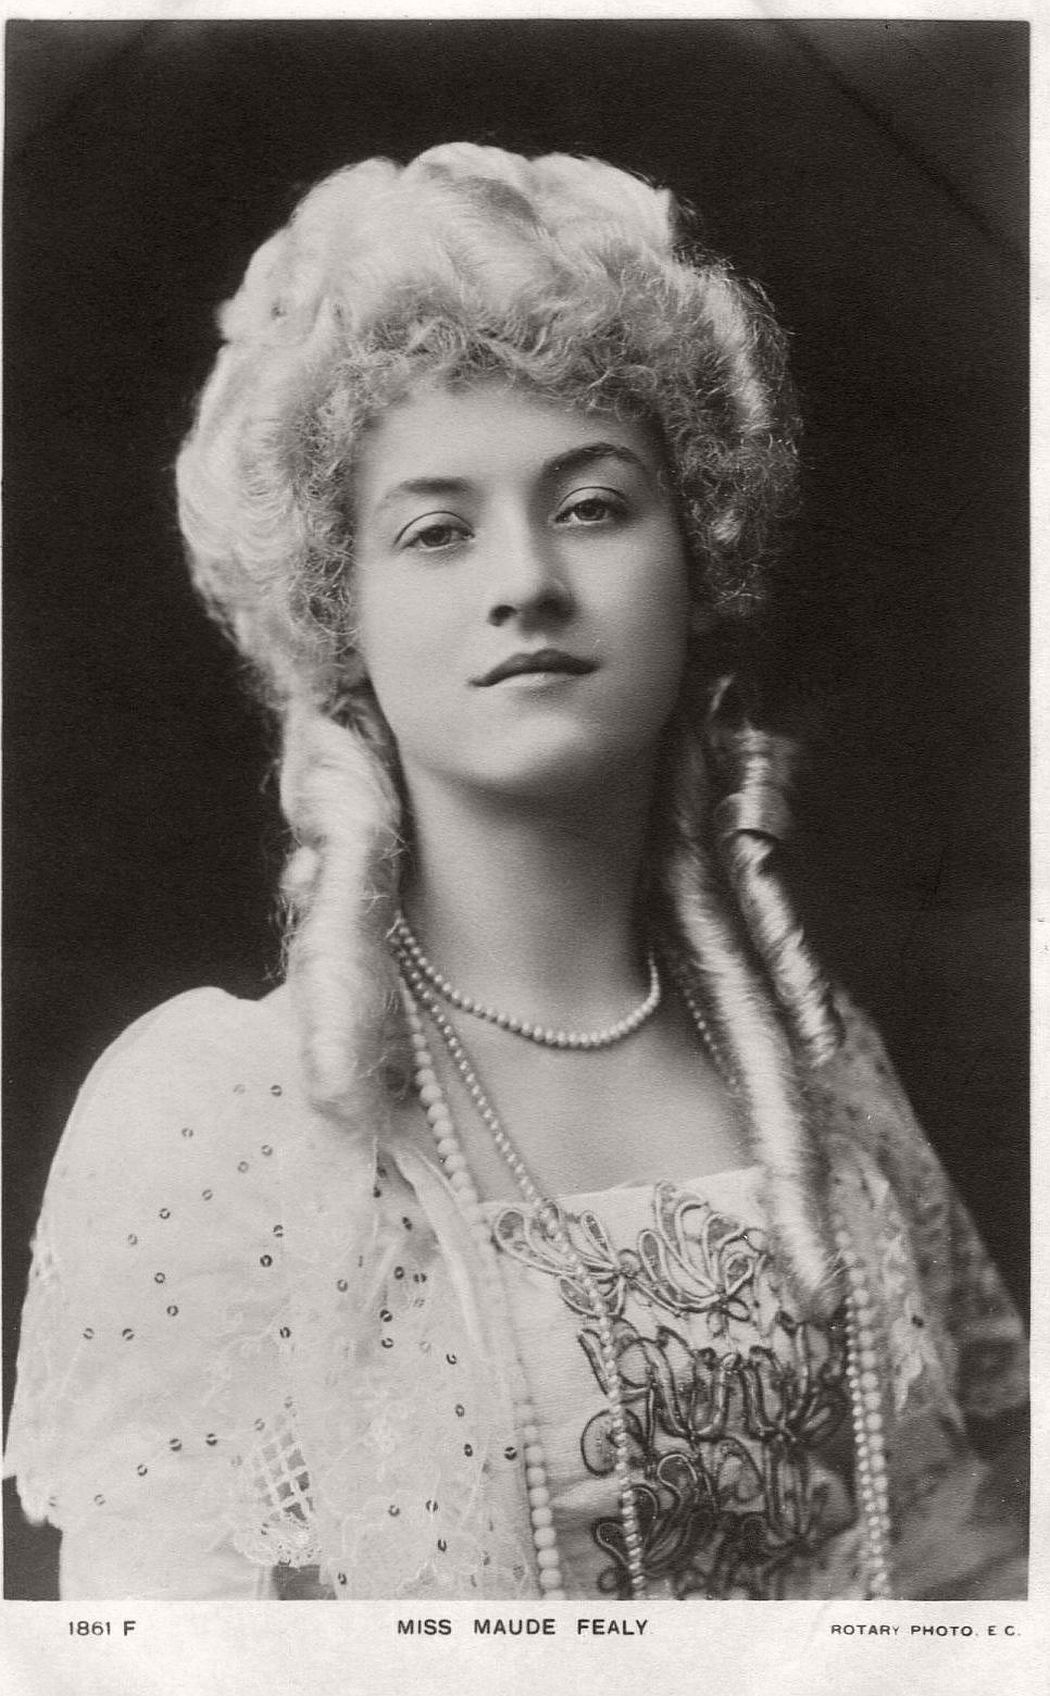 vintage-postcard-of-actress-miss-maude-fealy-1900s-early-xx-century-16